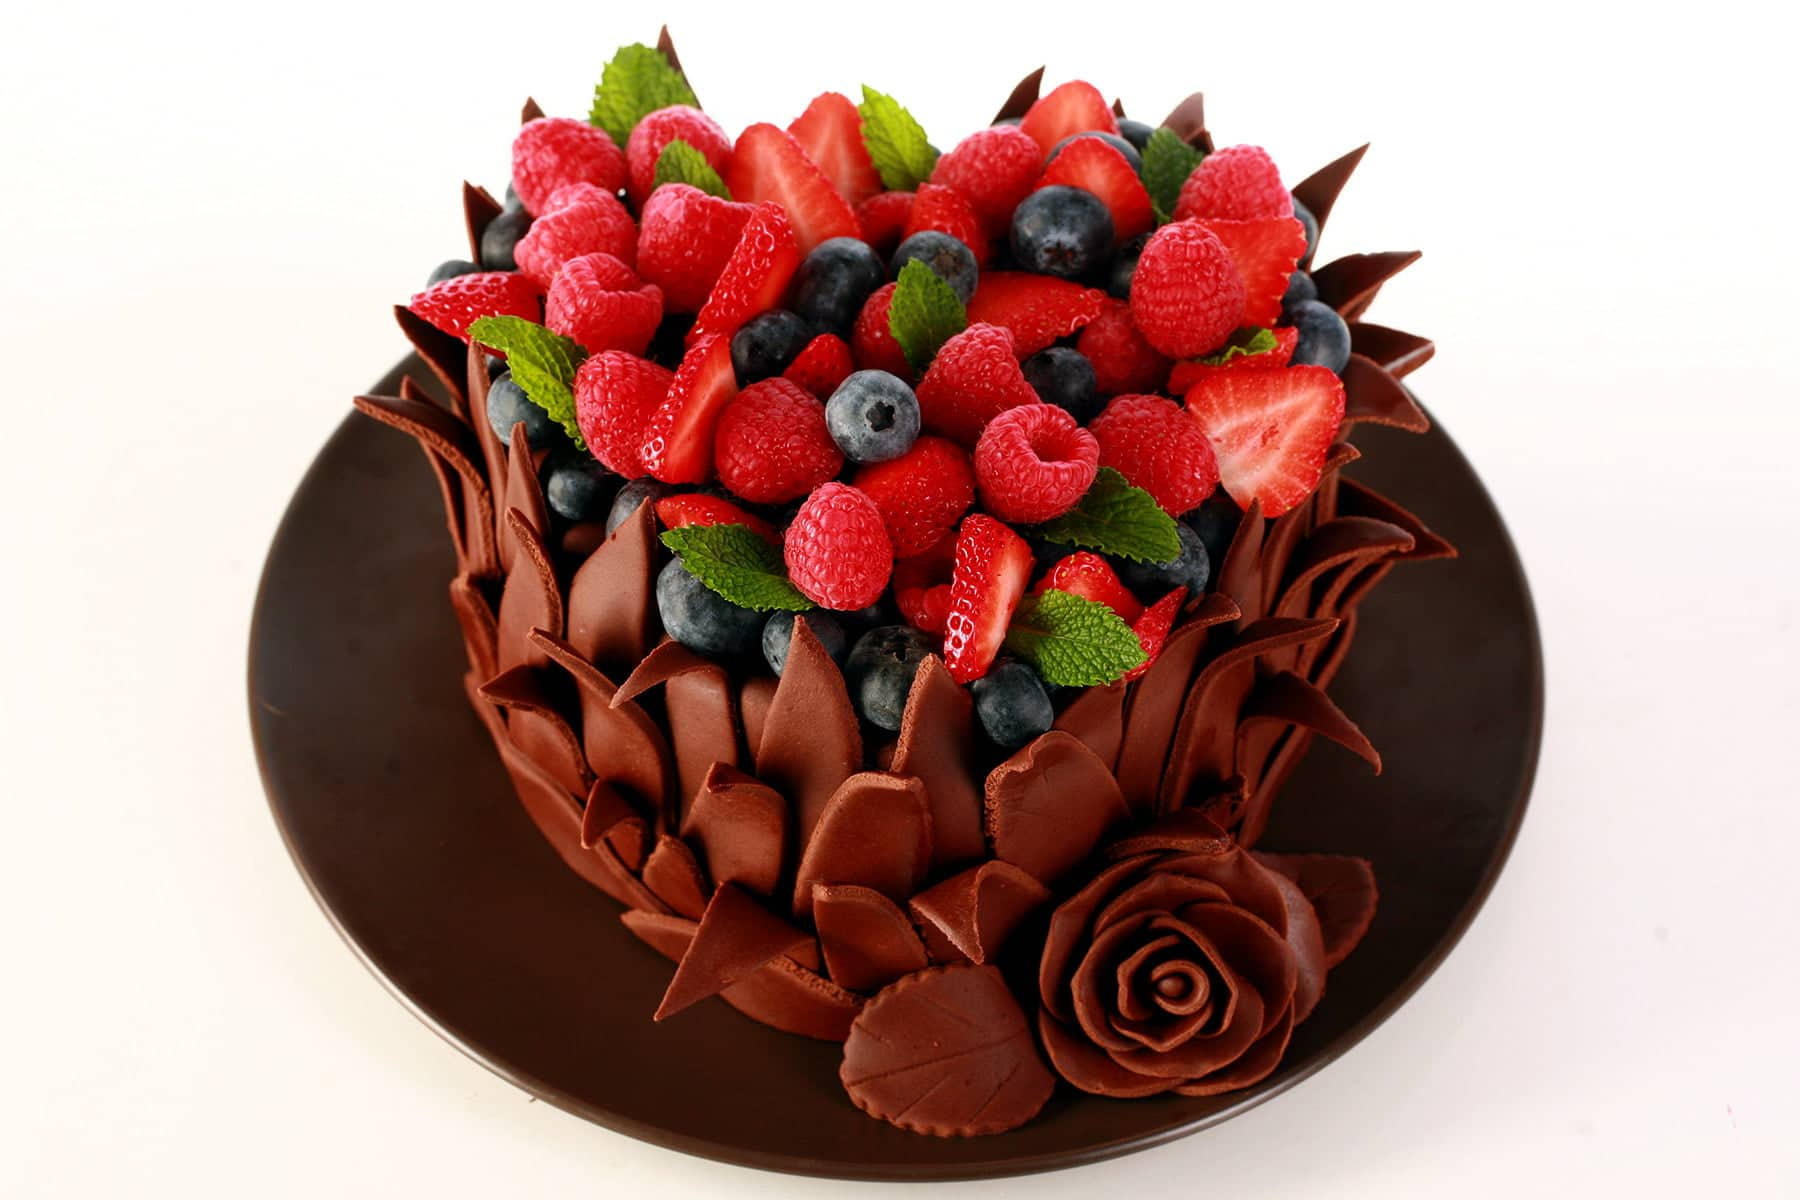 A heart shaped cake, covered in chocolate fondant leaves. The top of the cake is covered with a pile of fresh berries and mint leaves.